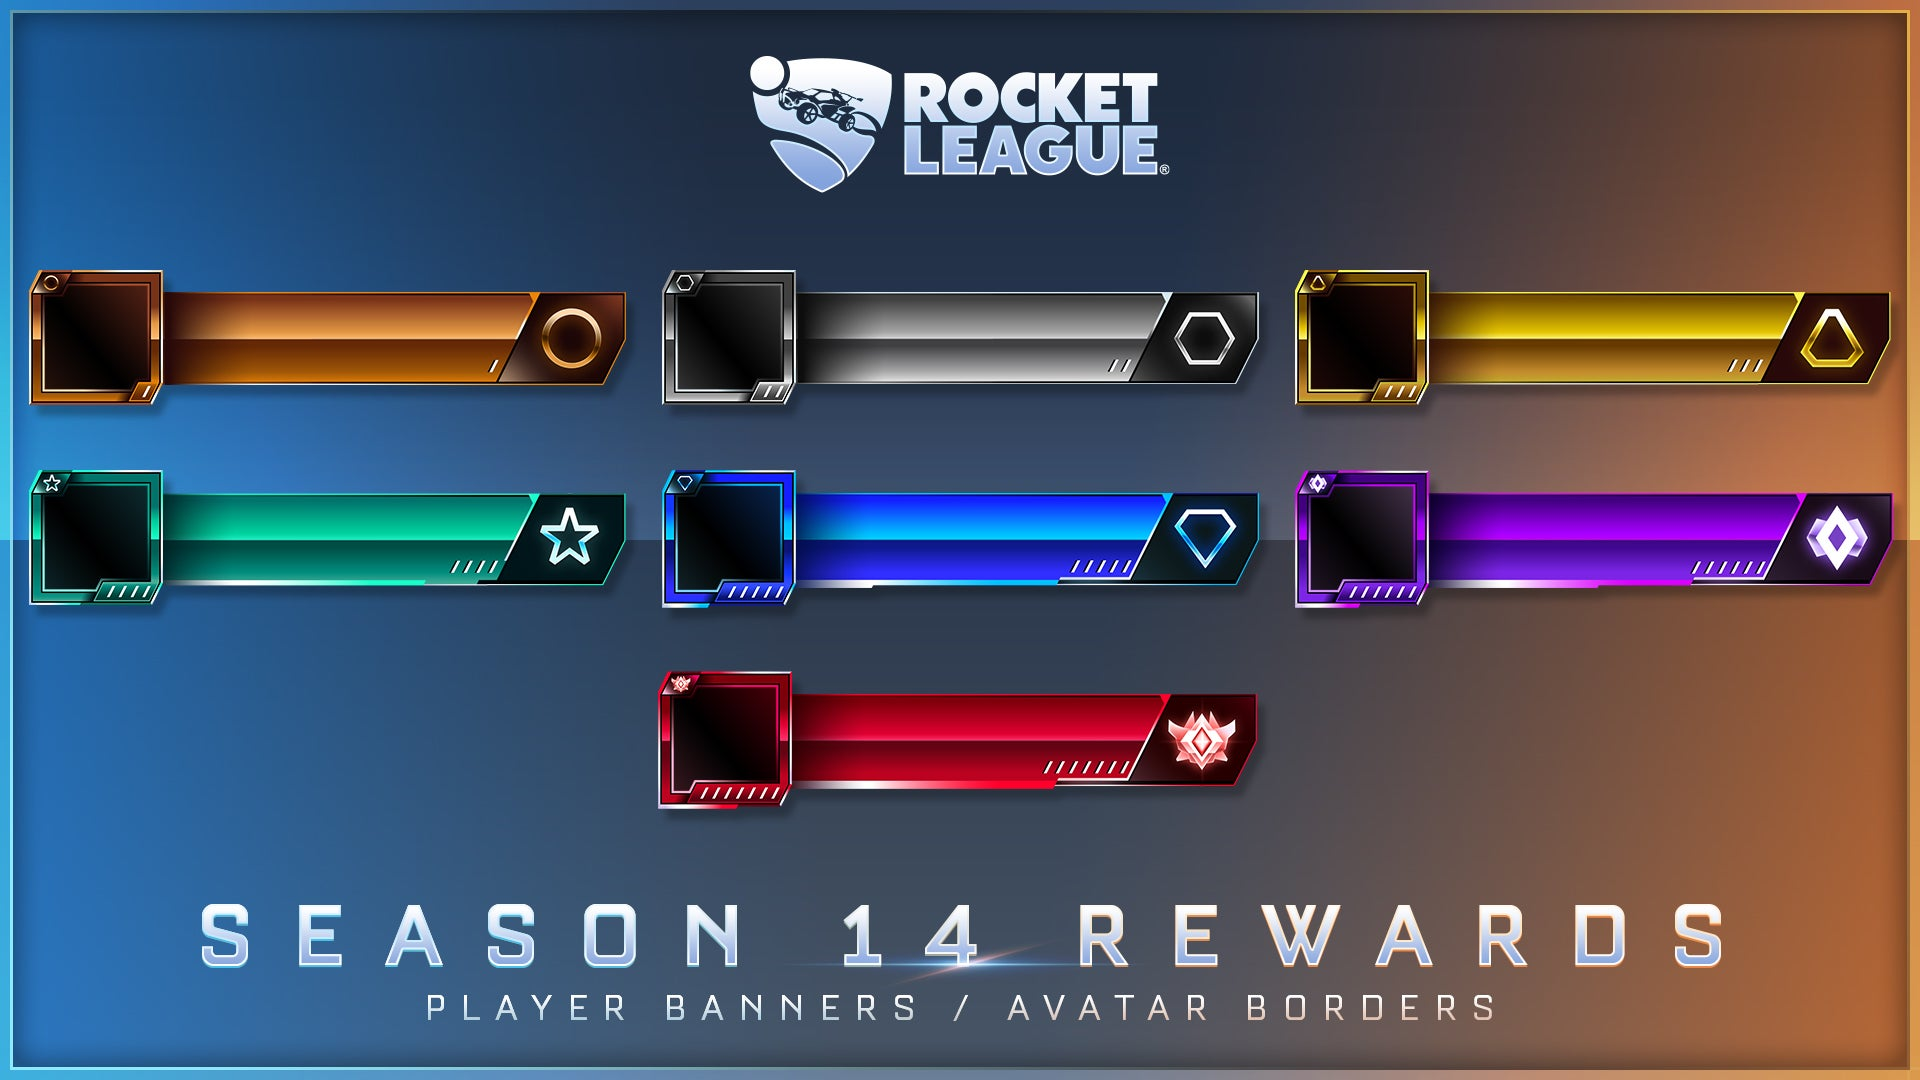 IMAGE(https://rocketleague.media.zestyio.com/rl_s14_rewards.jpg)